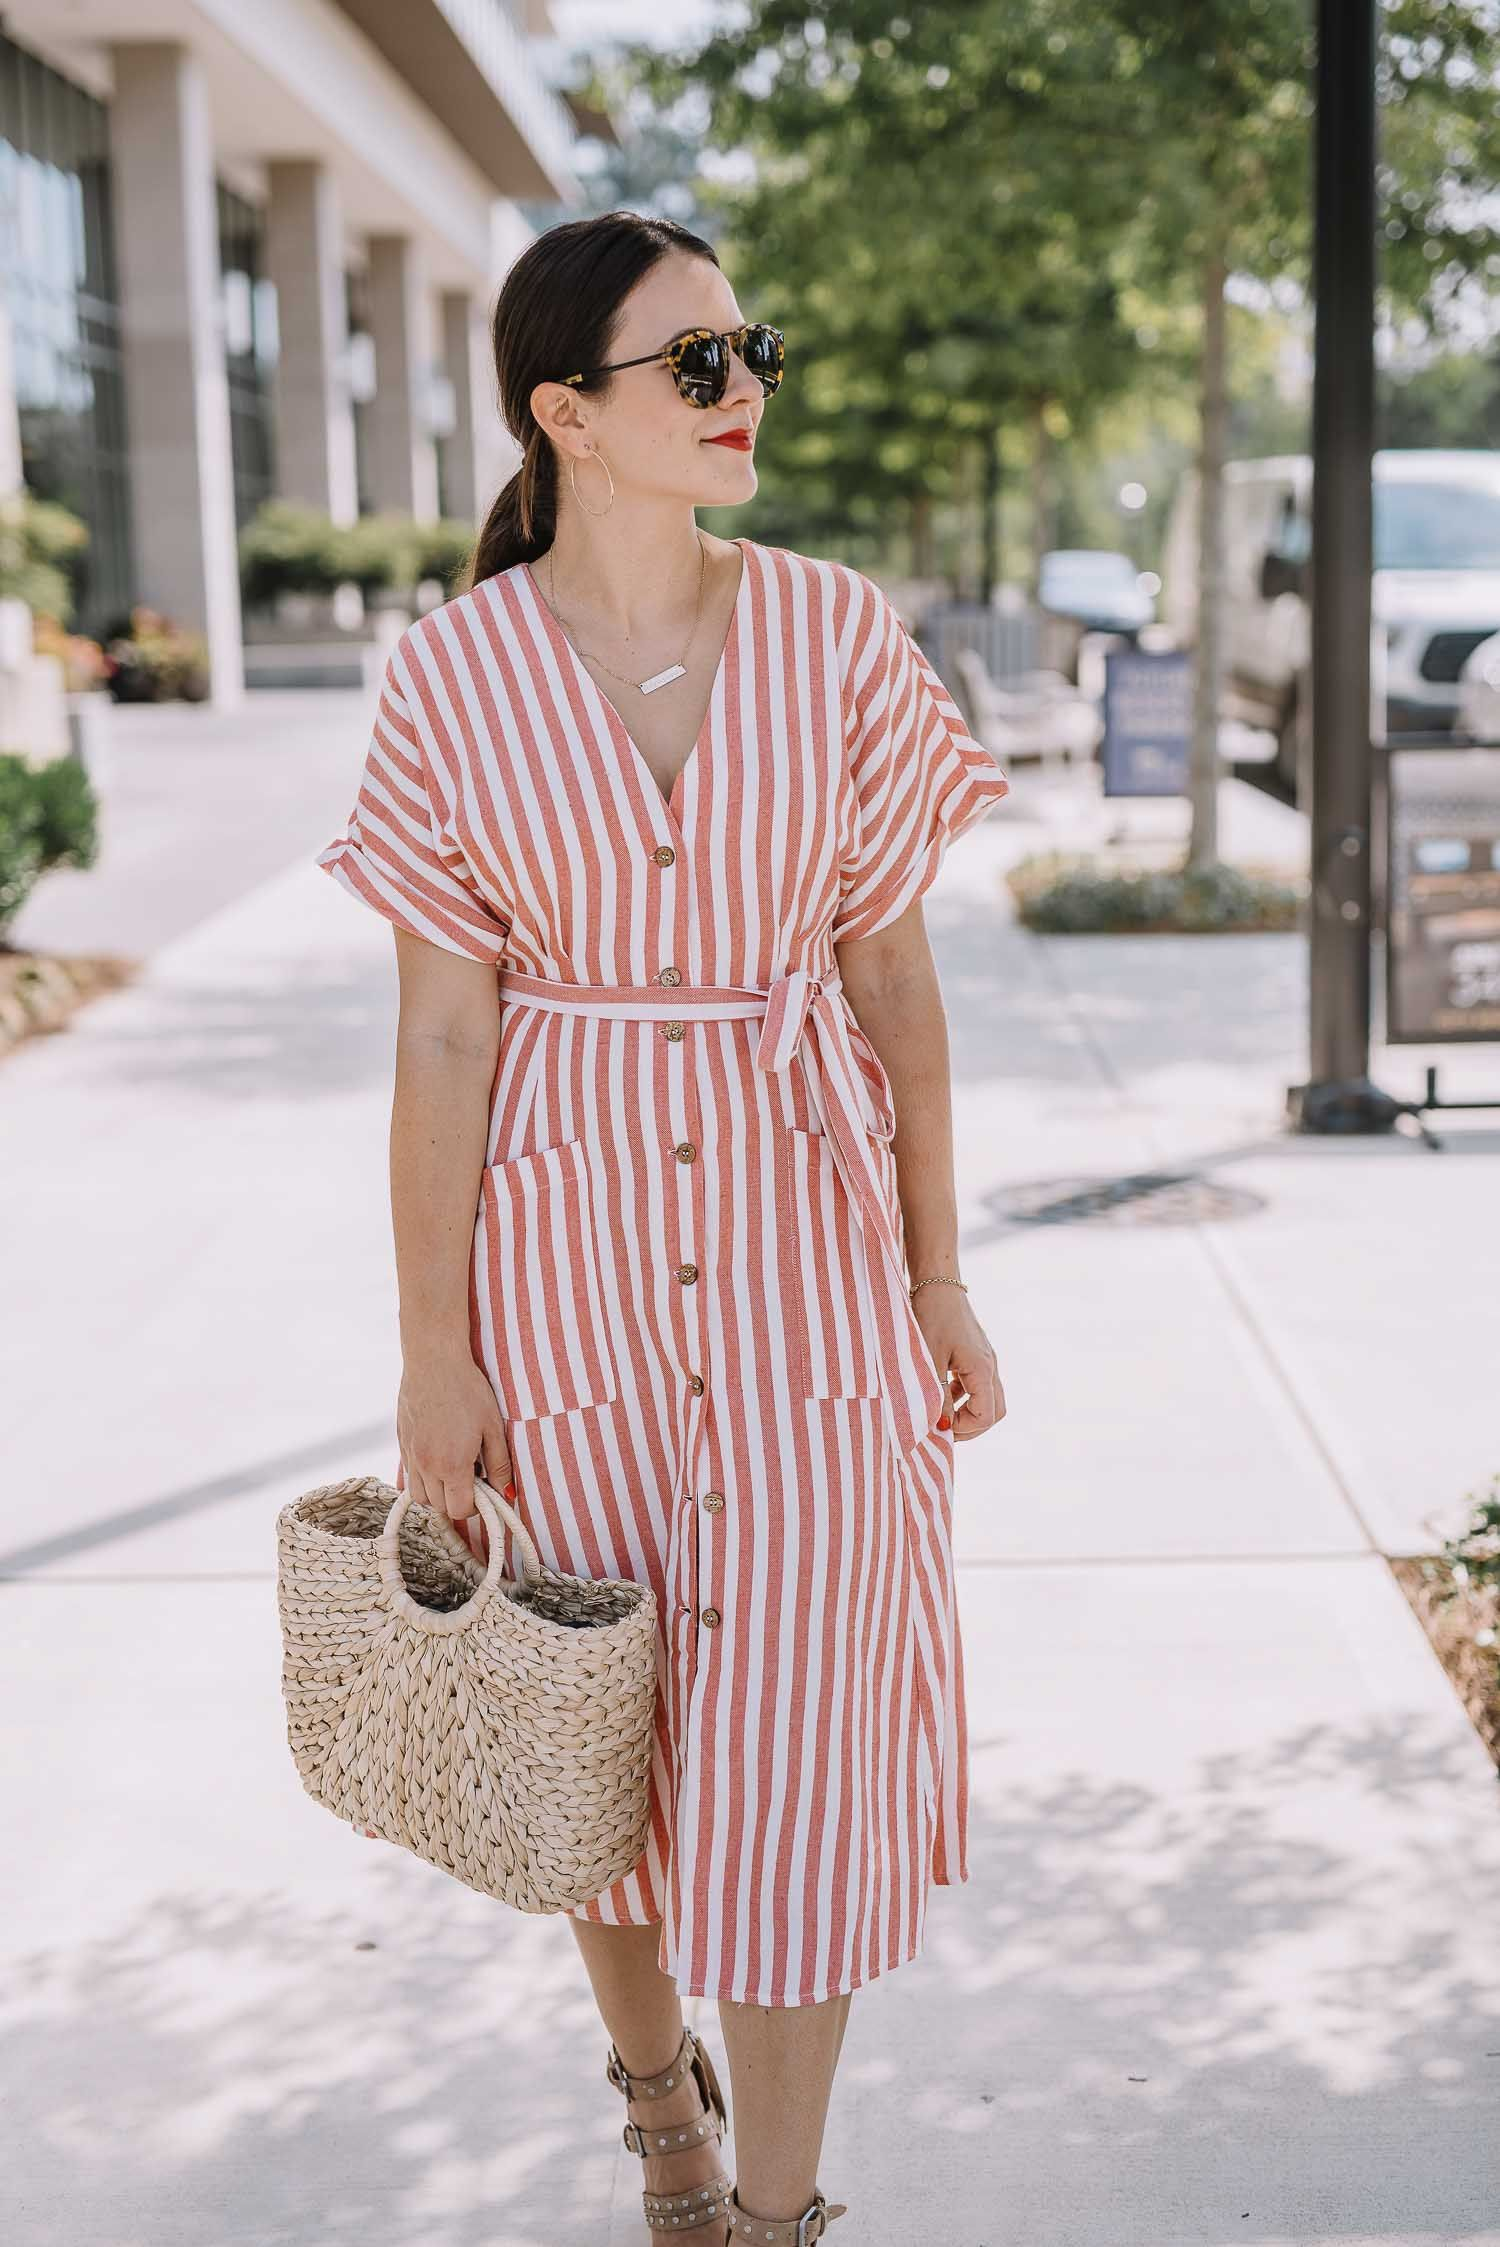 4th Of July Outfit Ideas That Feel Elevated An Indigo Day Striped Dress Outfit Stripe Outfits Stylish Dresses [ 2247 x 1500 Pixel ]